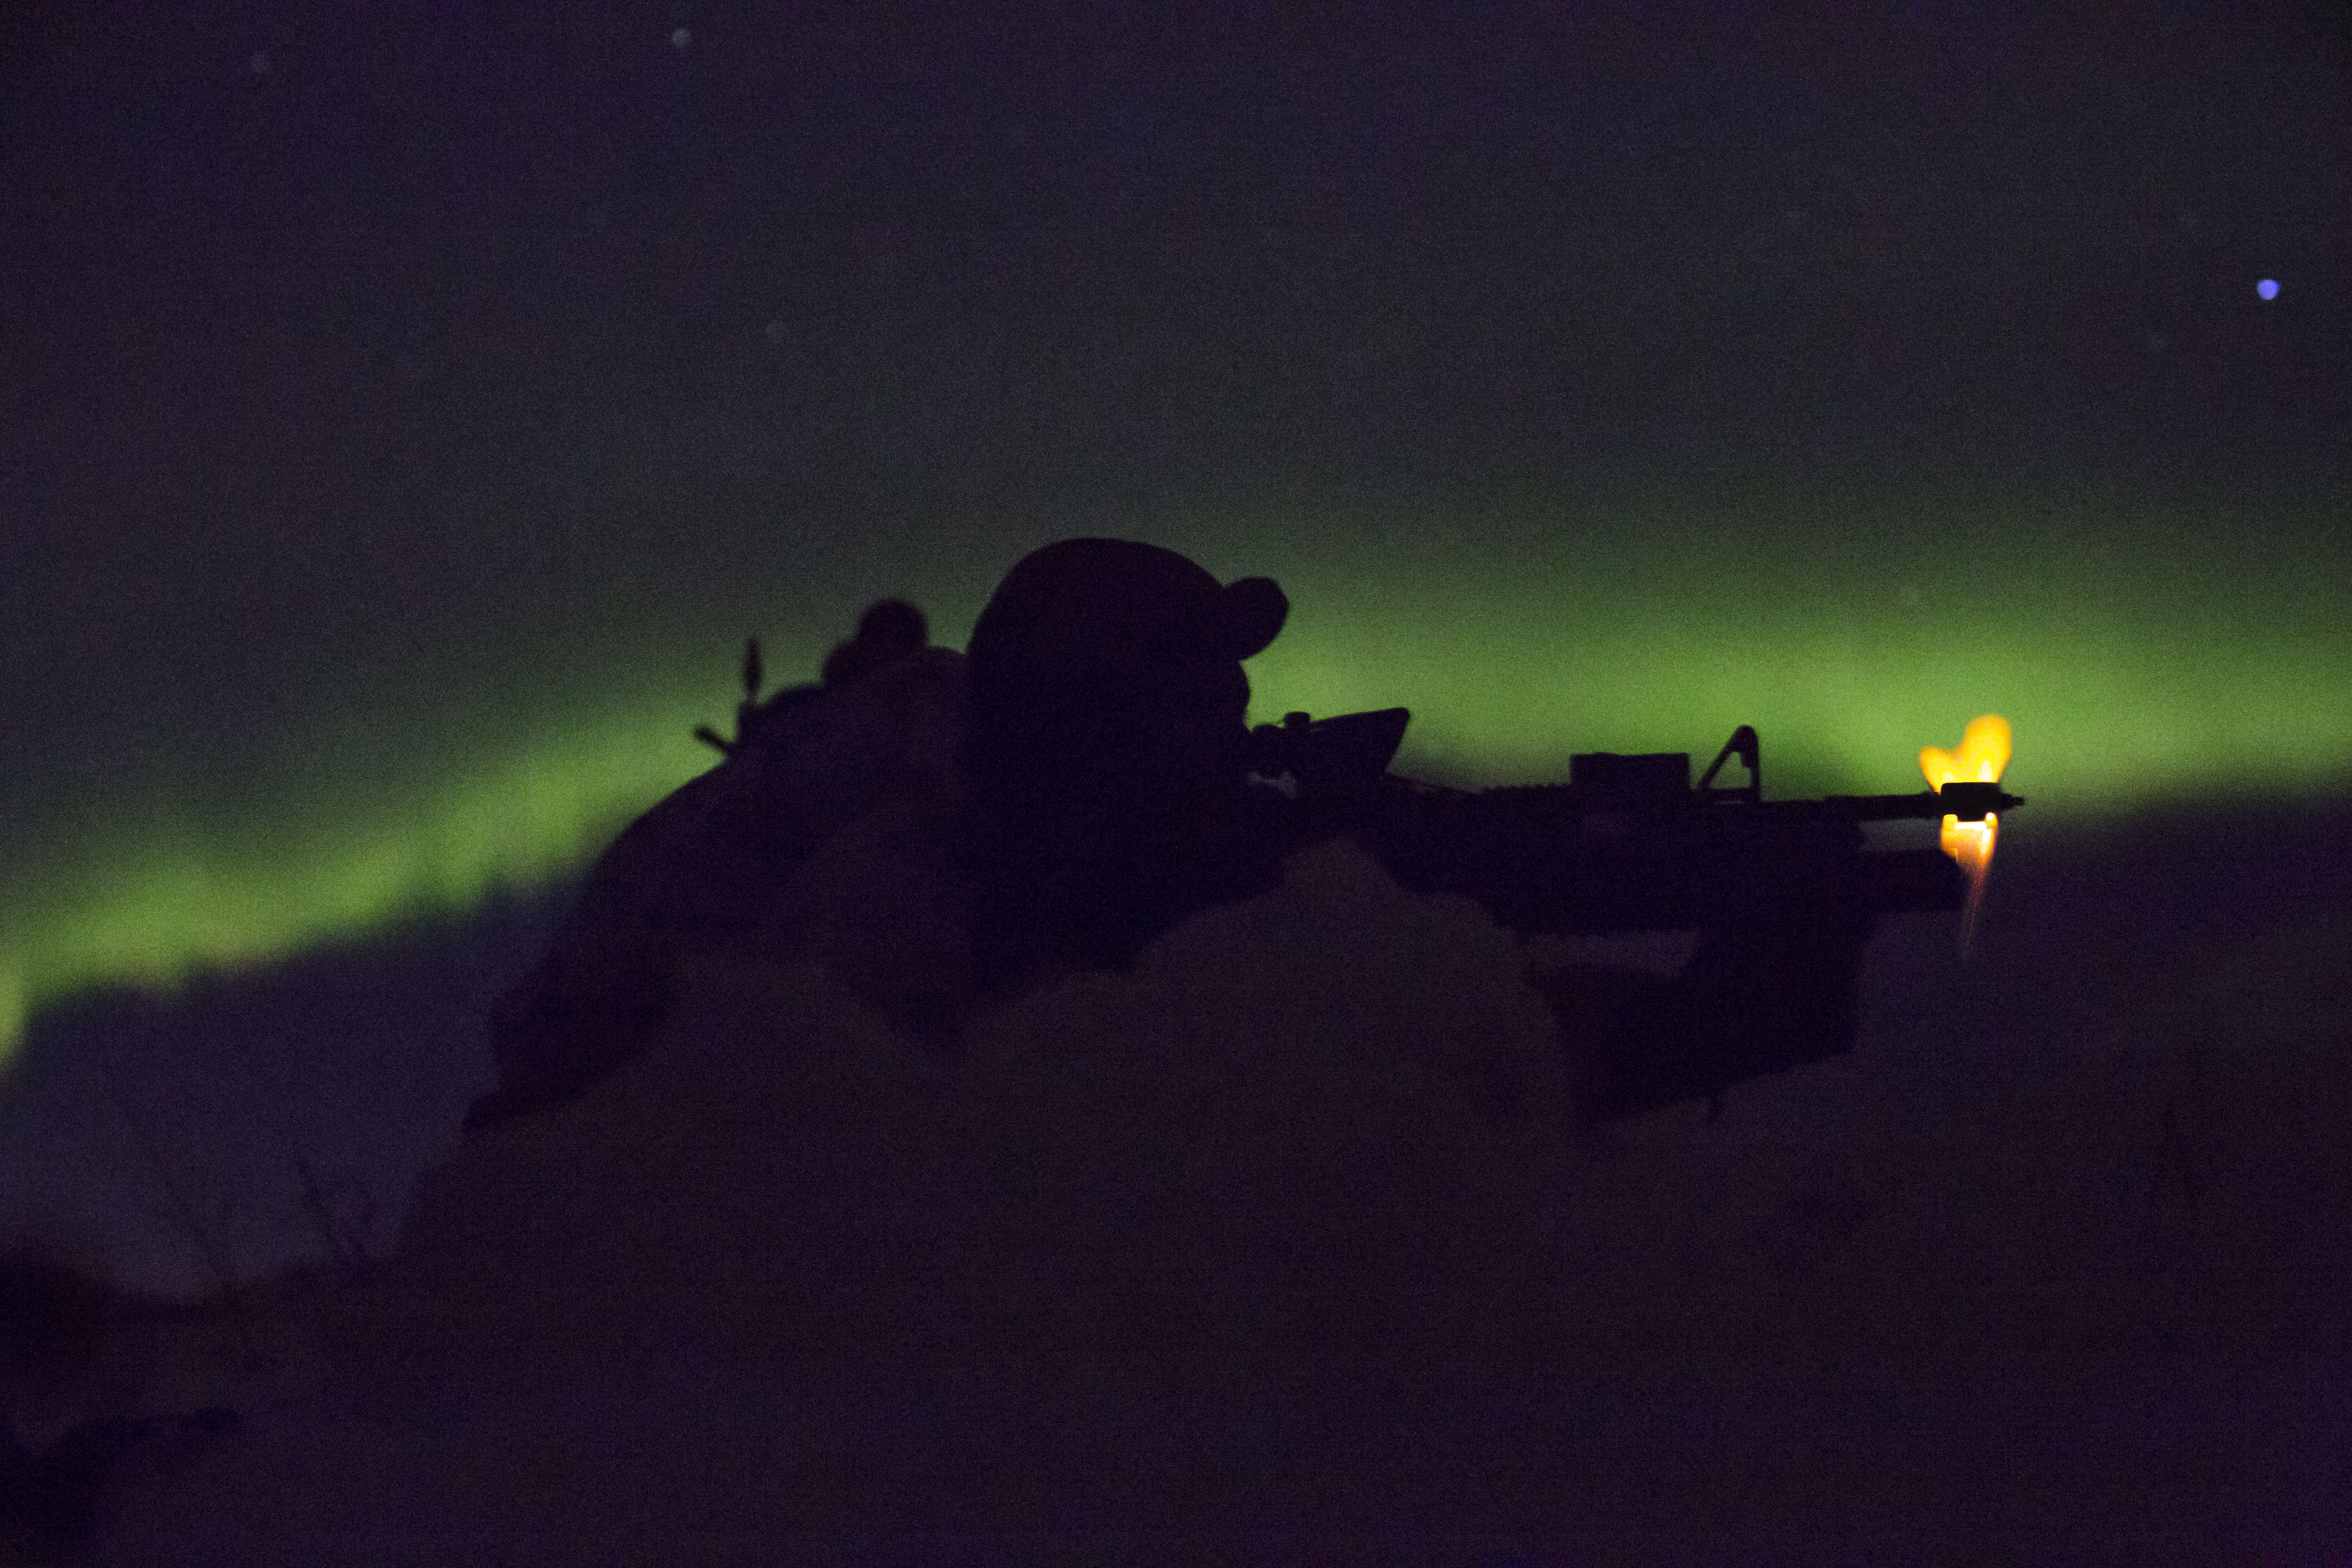 Marine with Marine Rotational Force-Europe conducts a mountainous assault on enemy position as the northern lights shine above during the field training exercise portion of Exercise White Claymore near Bardufoss, Norway, February 15, 2018. White Claymore is a U.K. Royal Marines-led training in northern Norway that focuses on winter warfare including training on movement in adverse terrain and over snow, and training in defensive and offensive operations in winter conditions. (Staff Sgt. Marcin Platek/Marines)